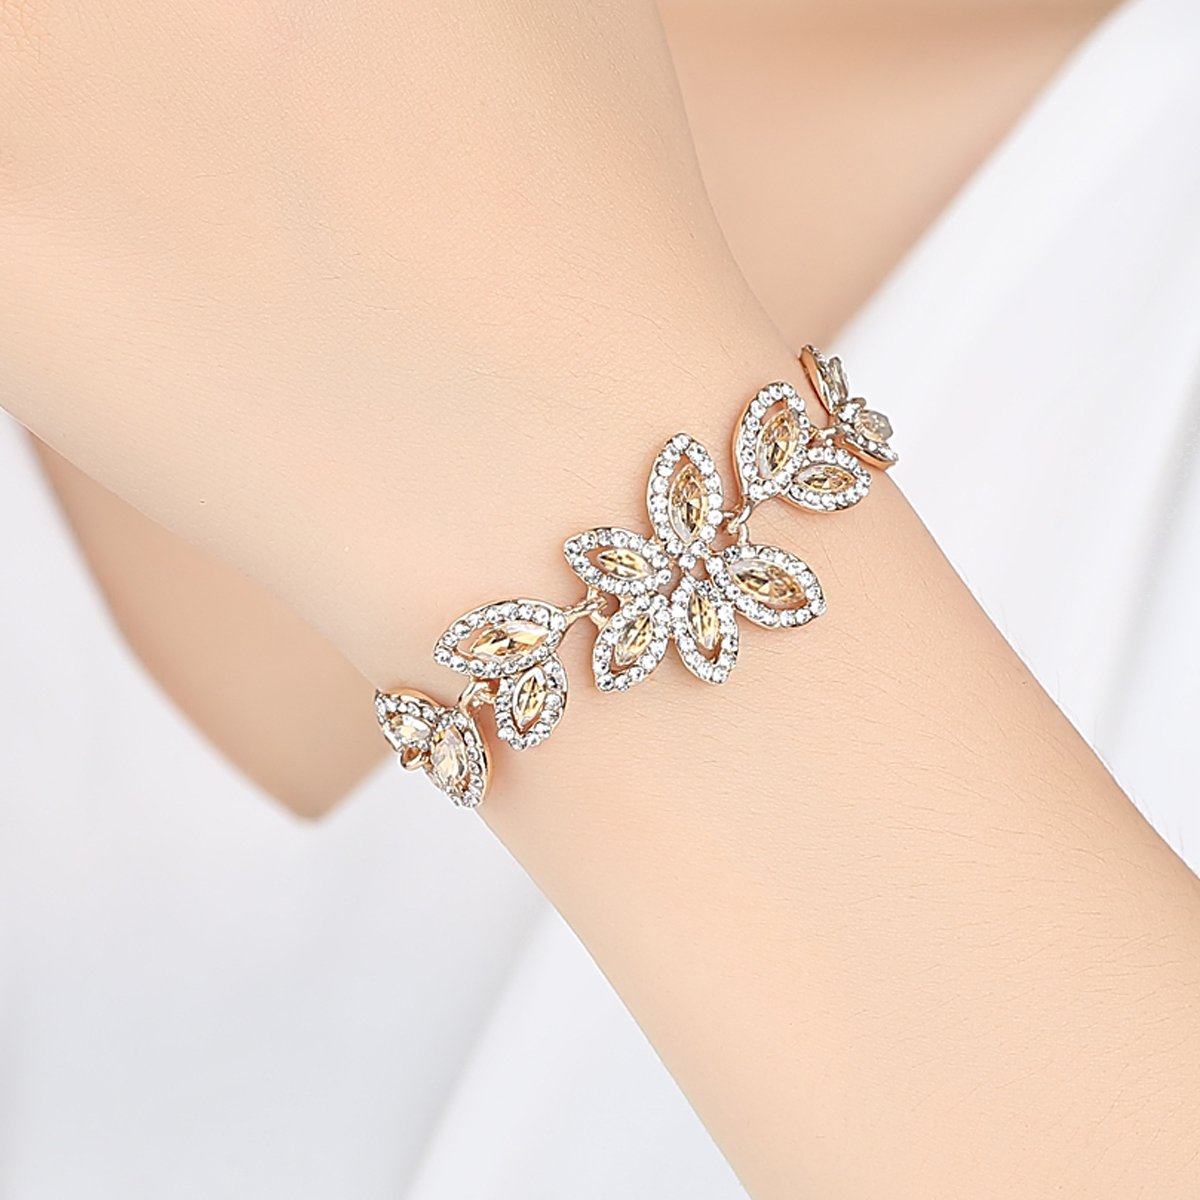 mecresh Champagne Rhinestone Leaf-Shape Earring and Bracelets Wedding Jewelry Sets for Women Brides Bridesmaid by mecresh (Image #3)